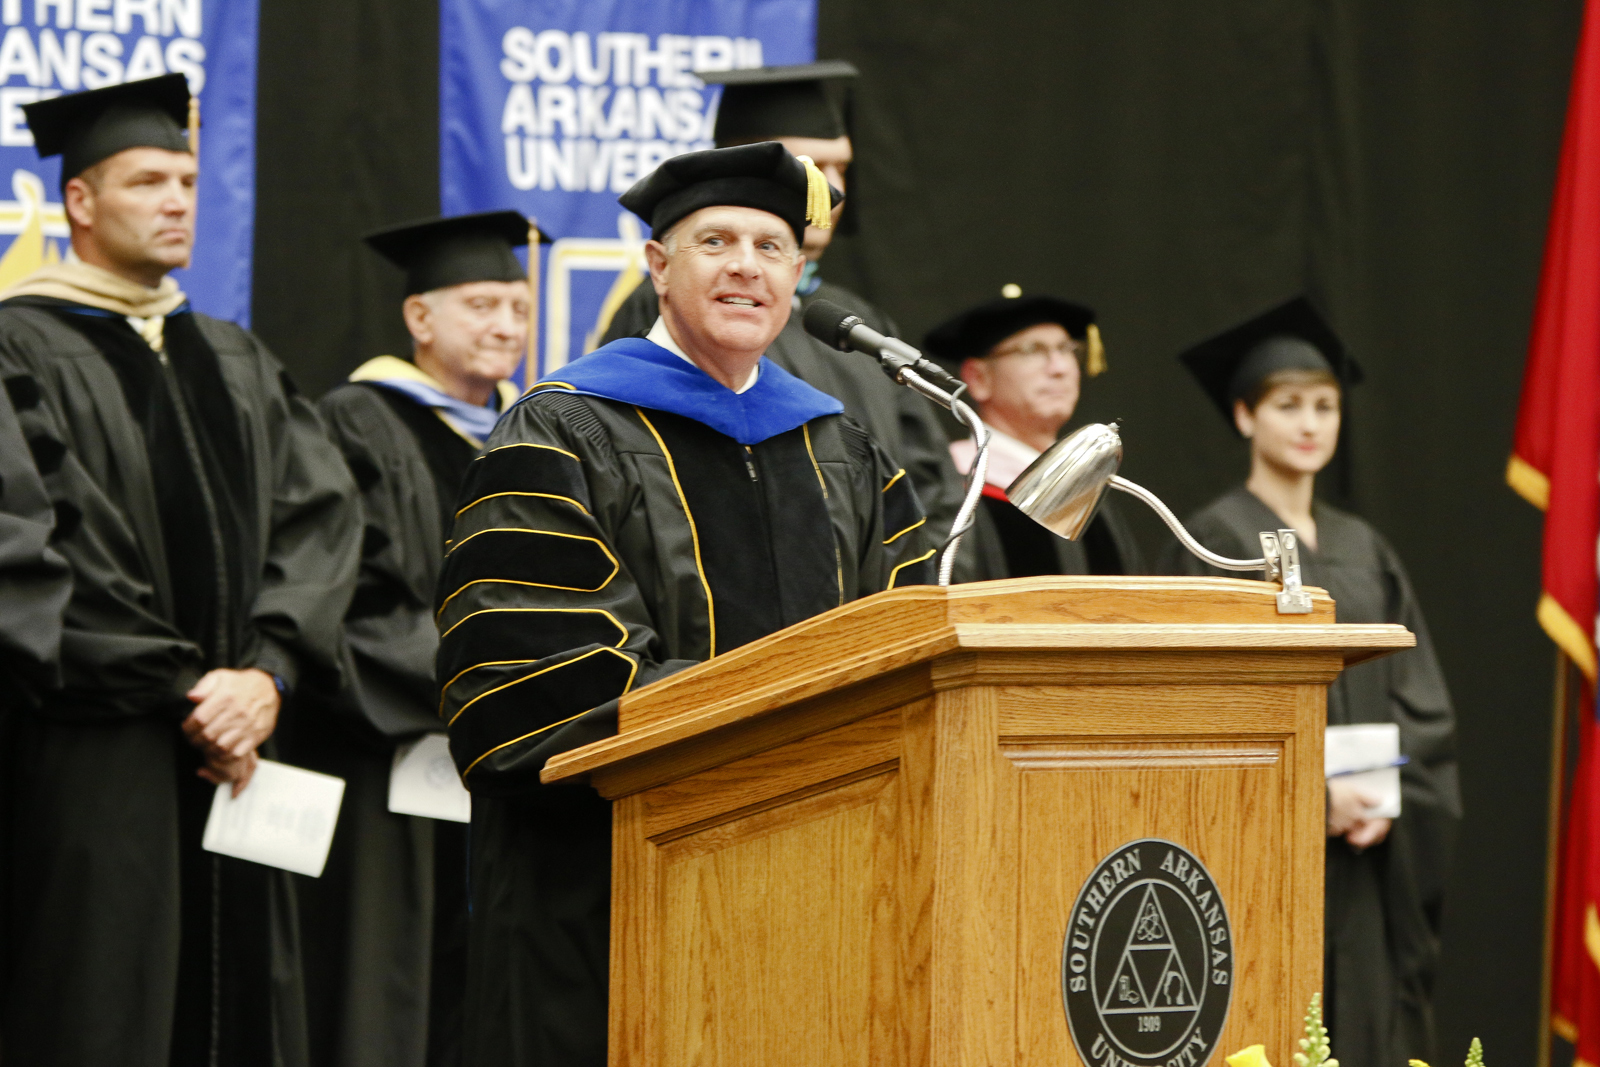 1465492524 sau may 16 undergraduate commencement dr. trey berry sau pres